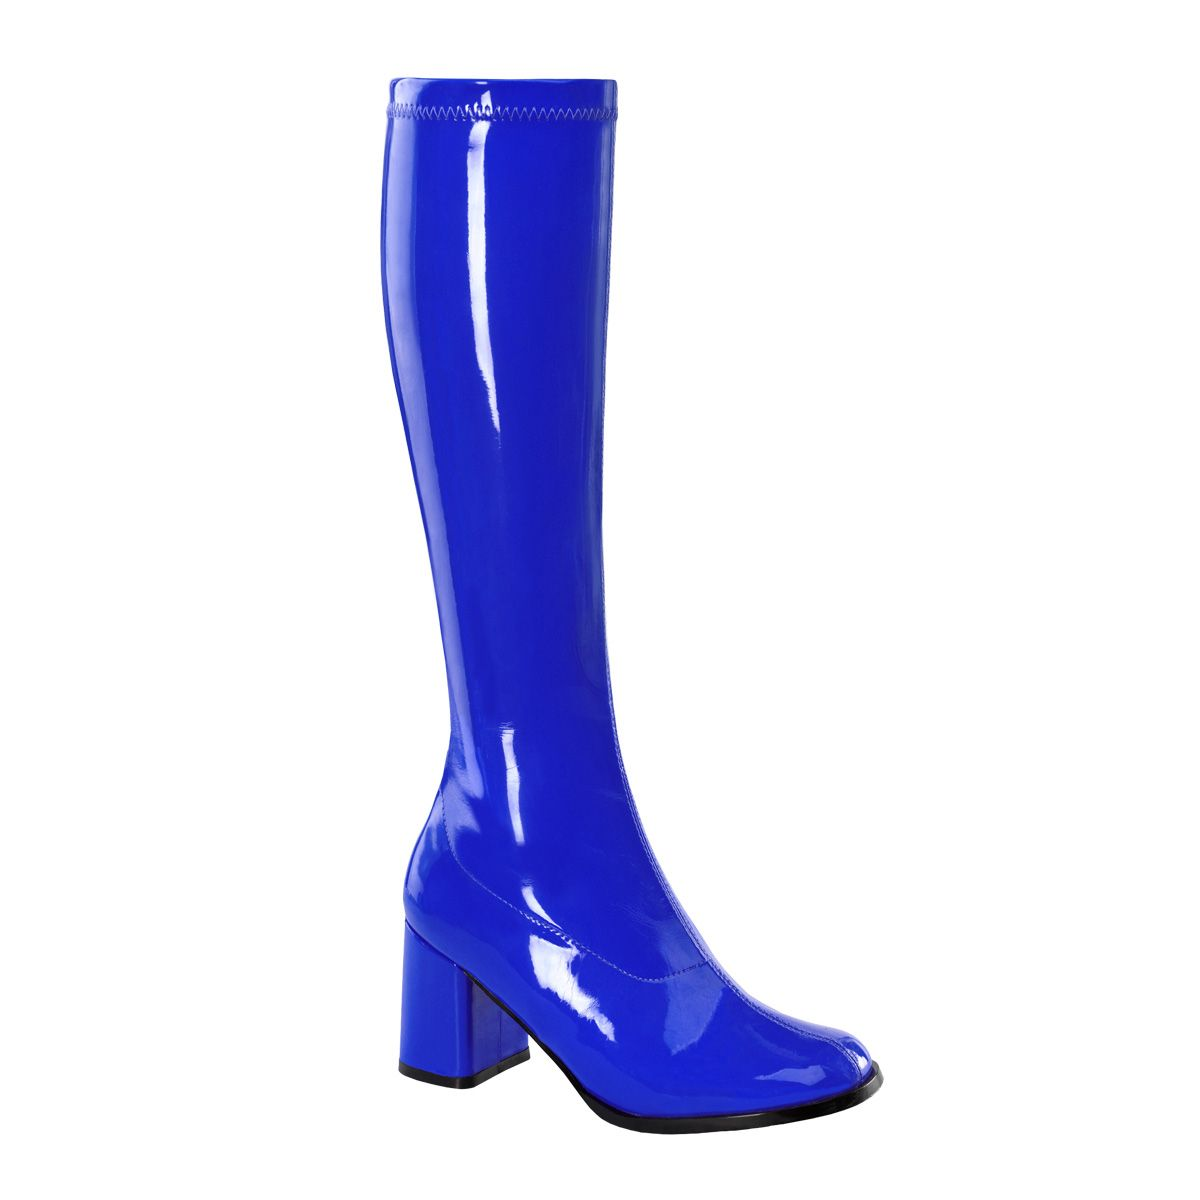 Pleaser Gogo 300 Knee High Boot W Side Zipper